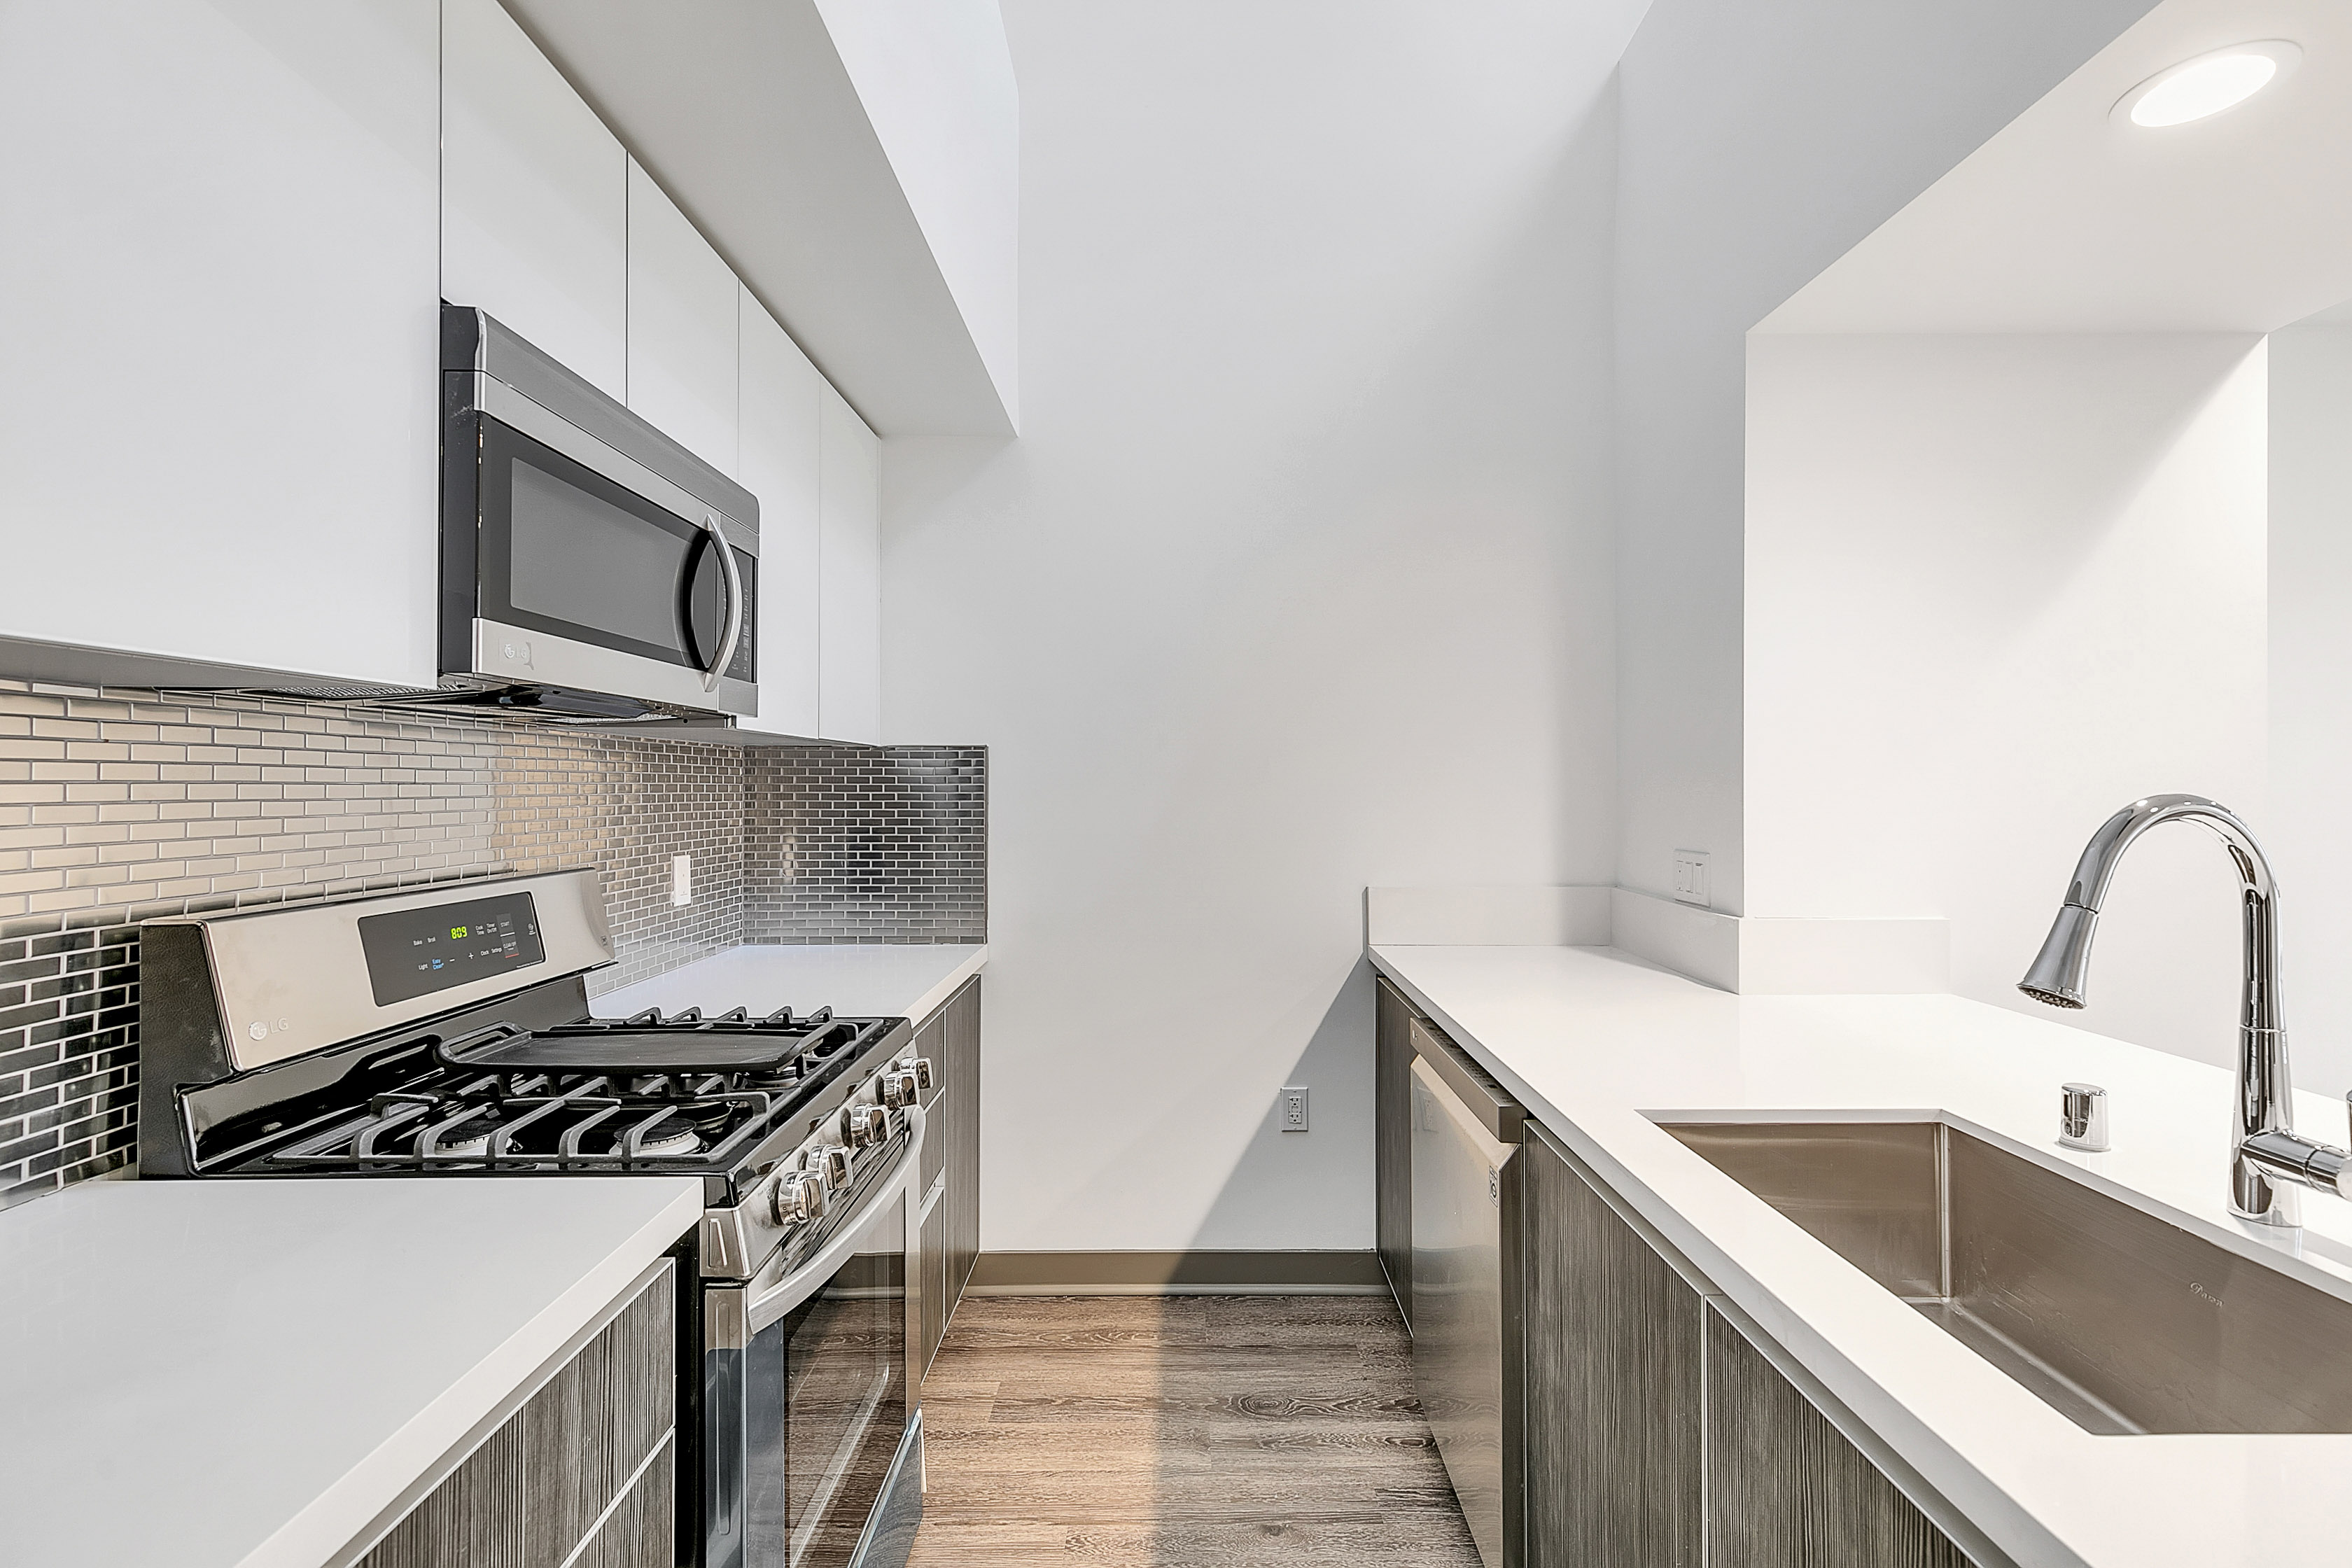 LUXURY 1BR/ 1BA + LOFTED DEN: Balcony, Parking included, Amazing Location in EaHo